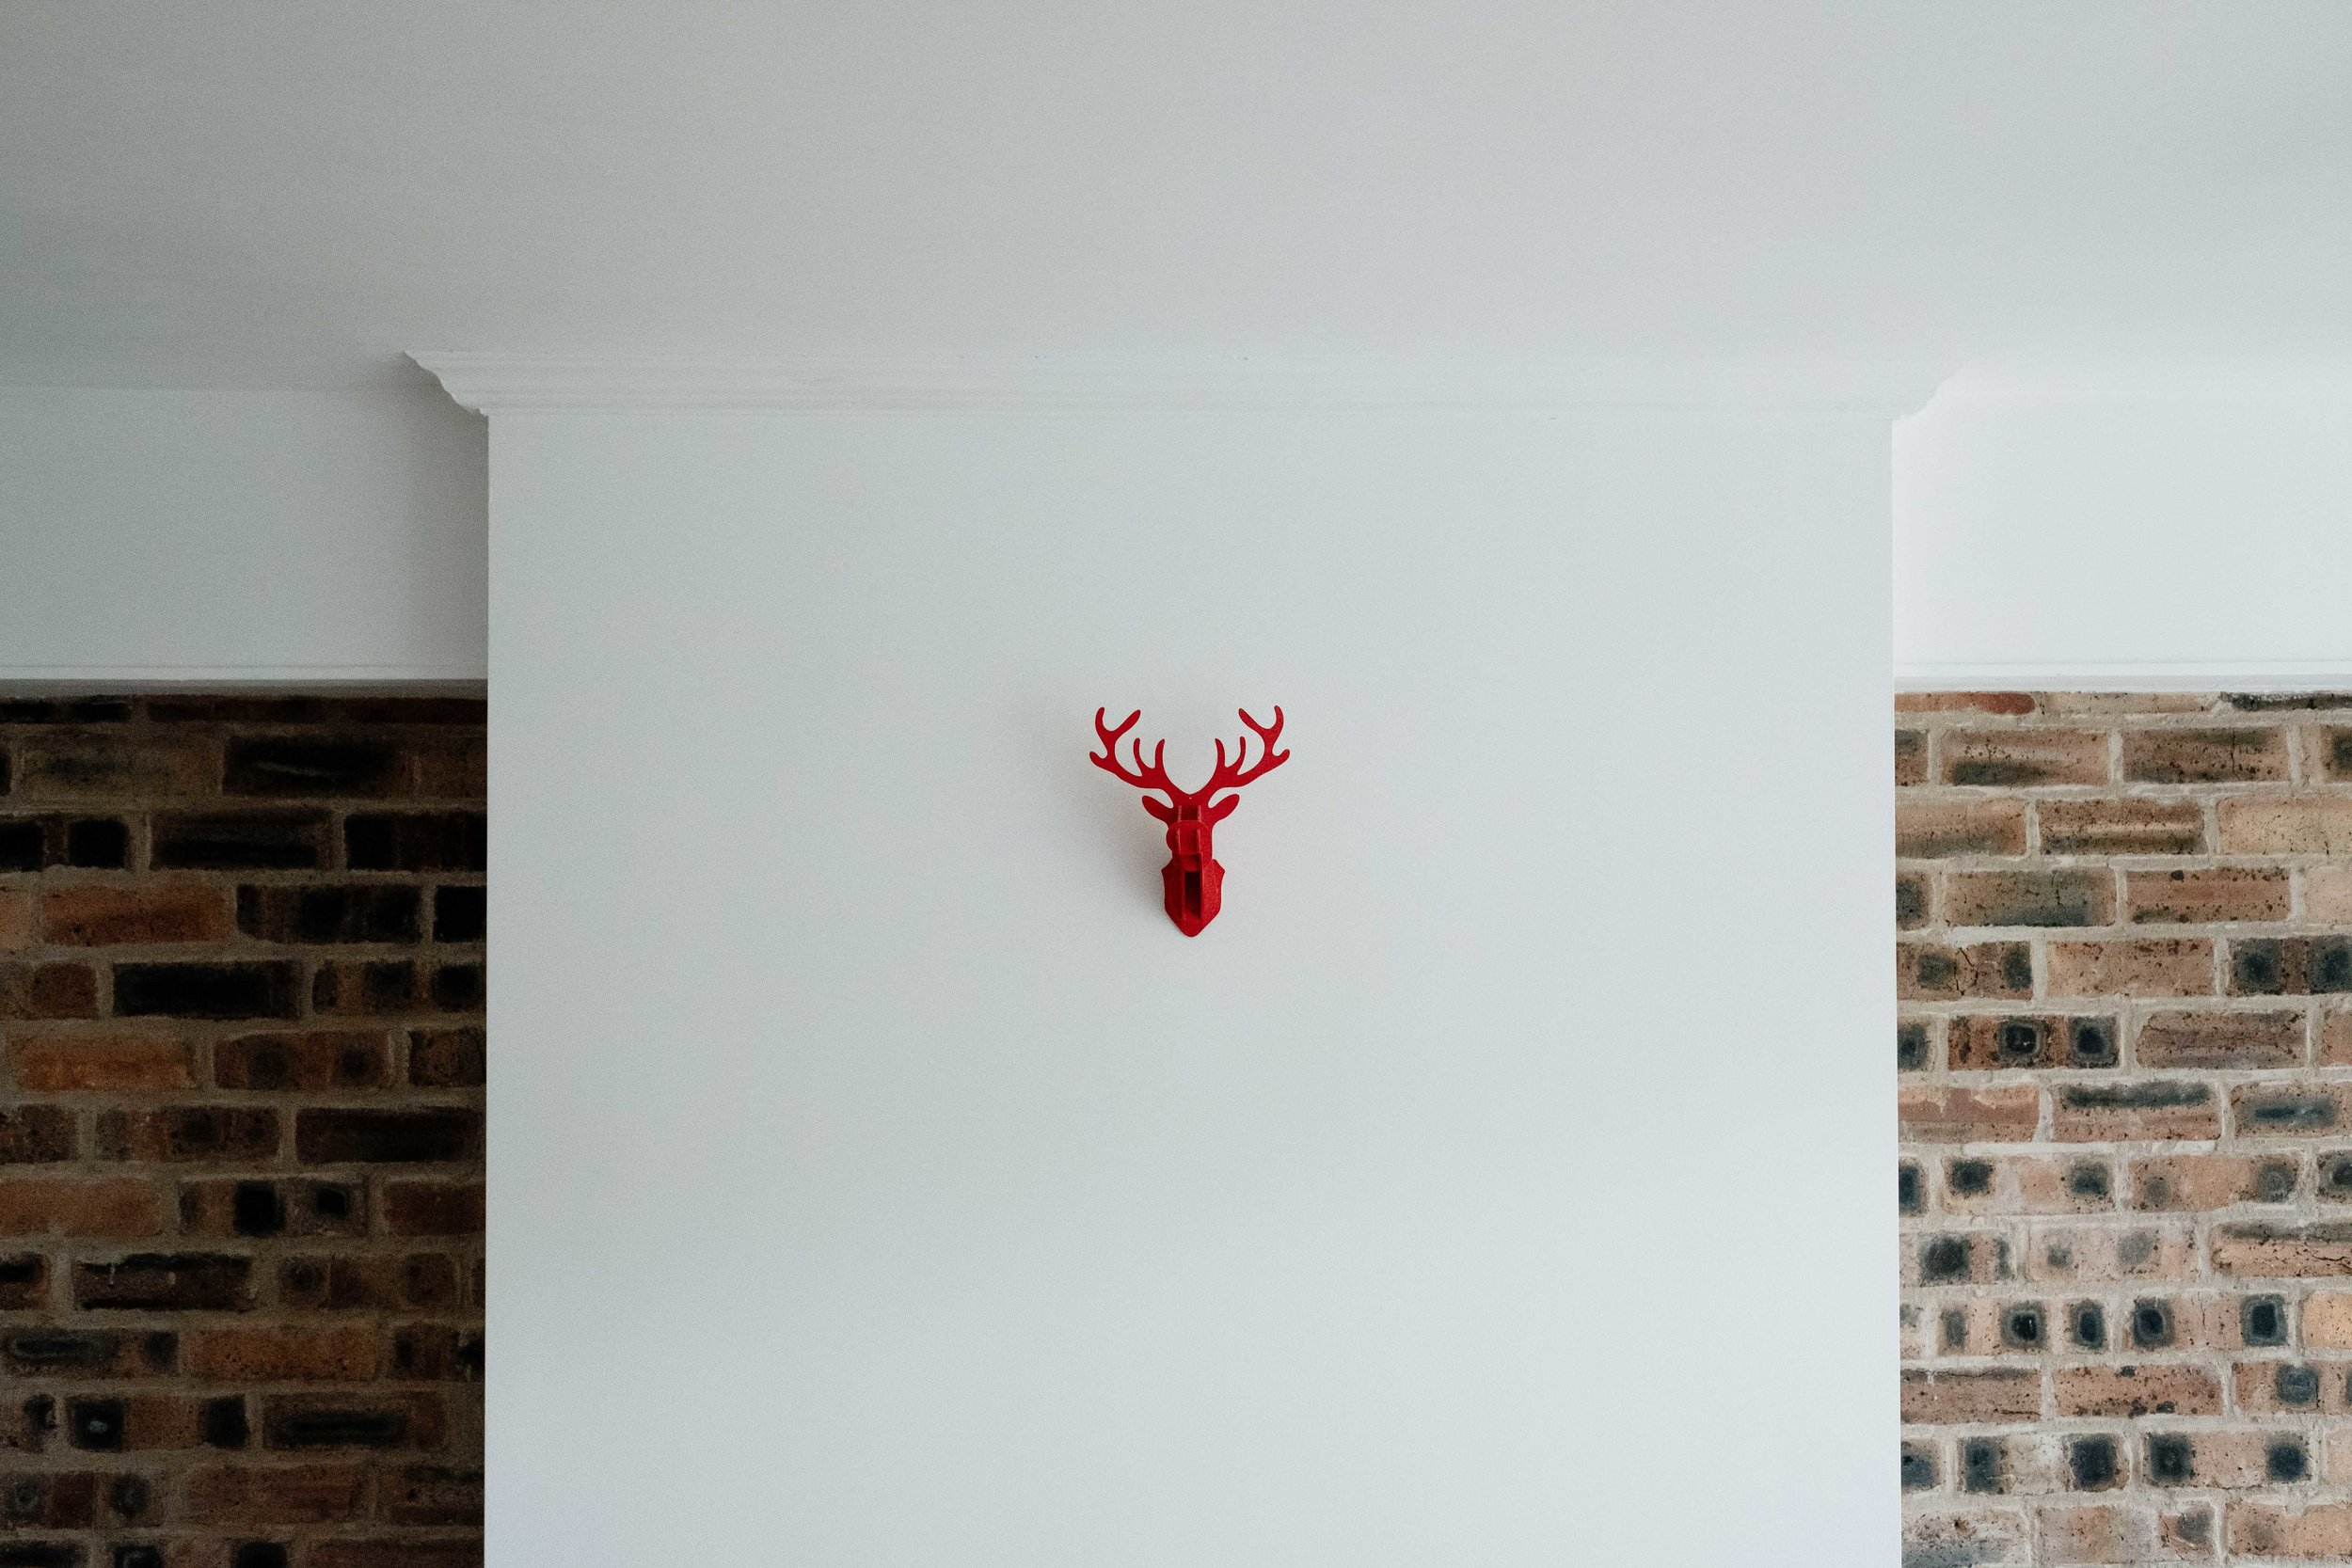 stag head on wall of house